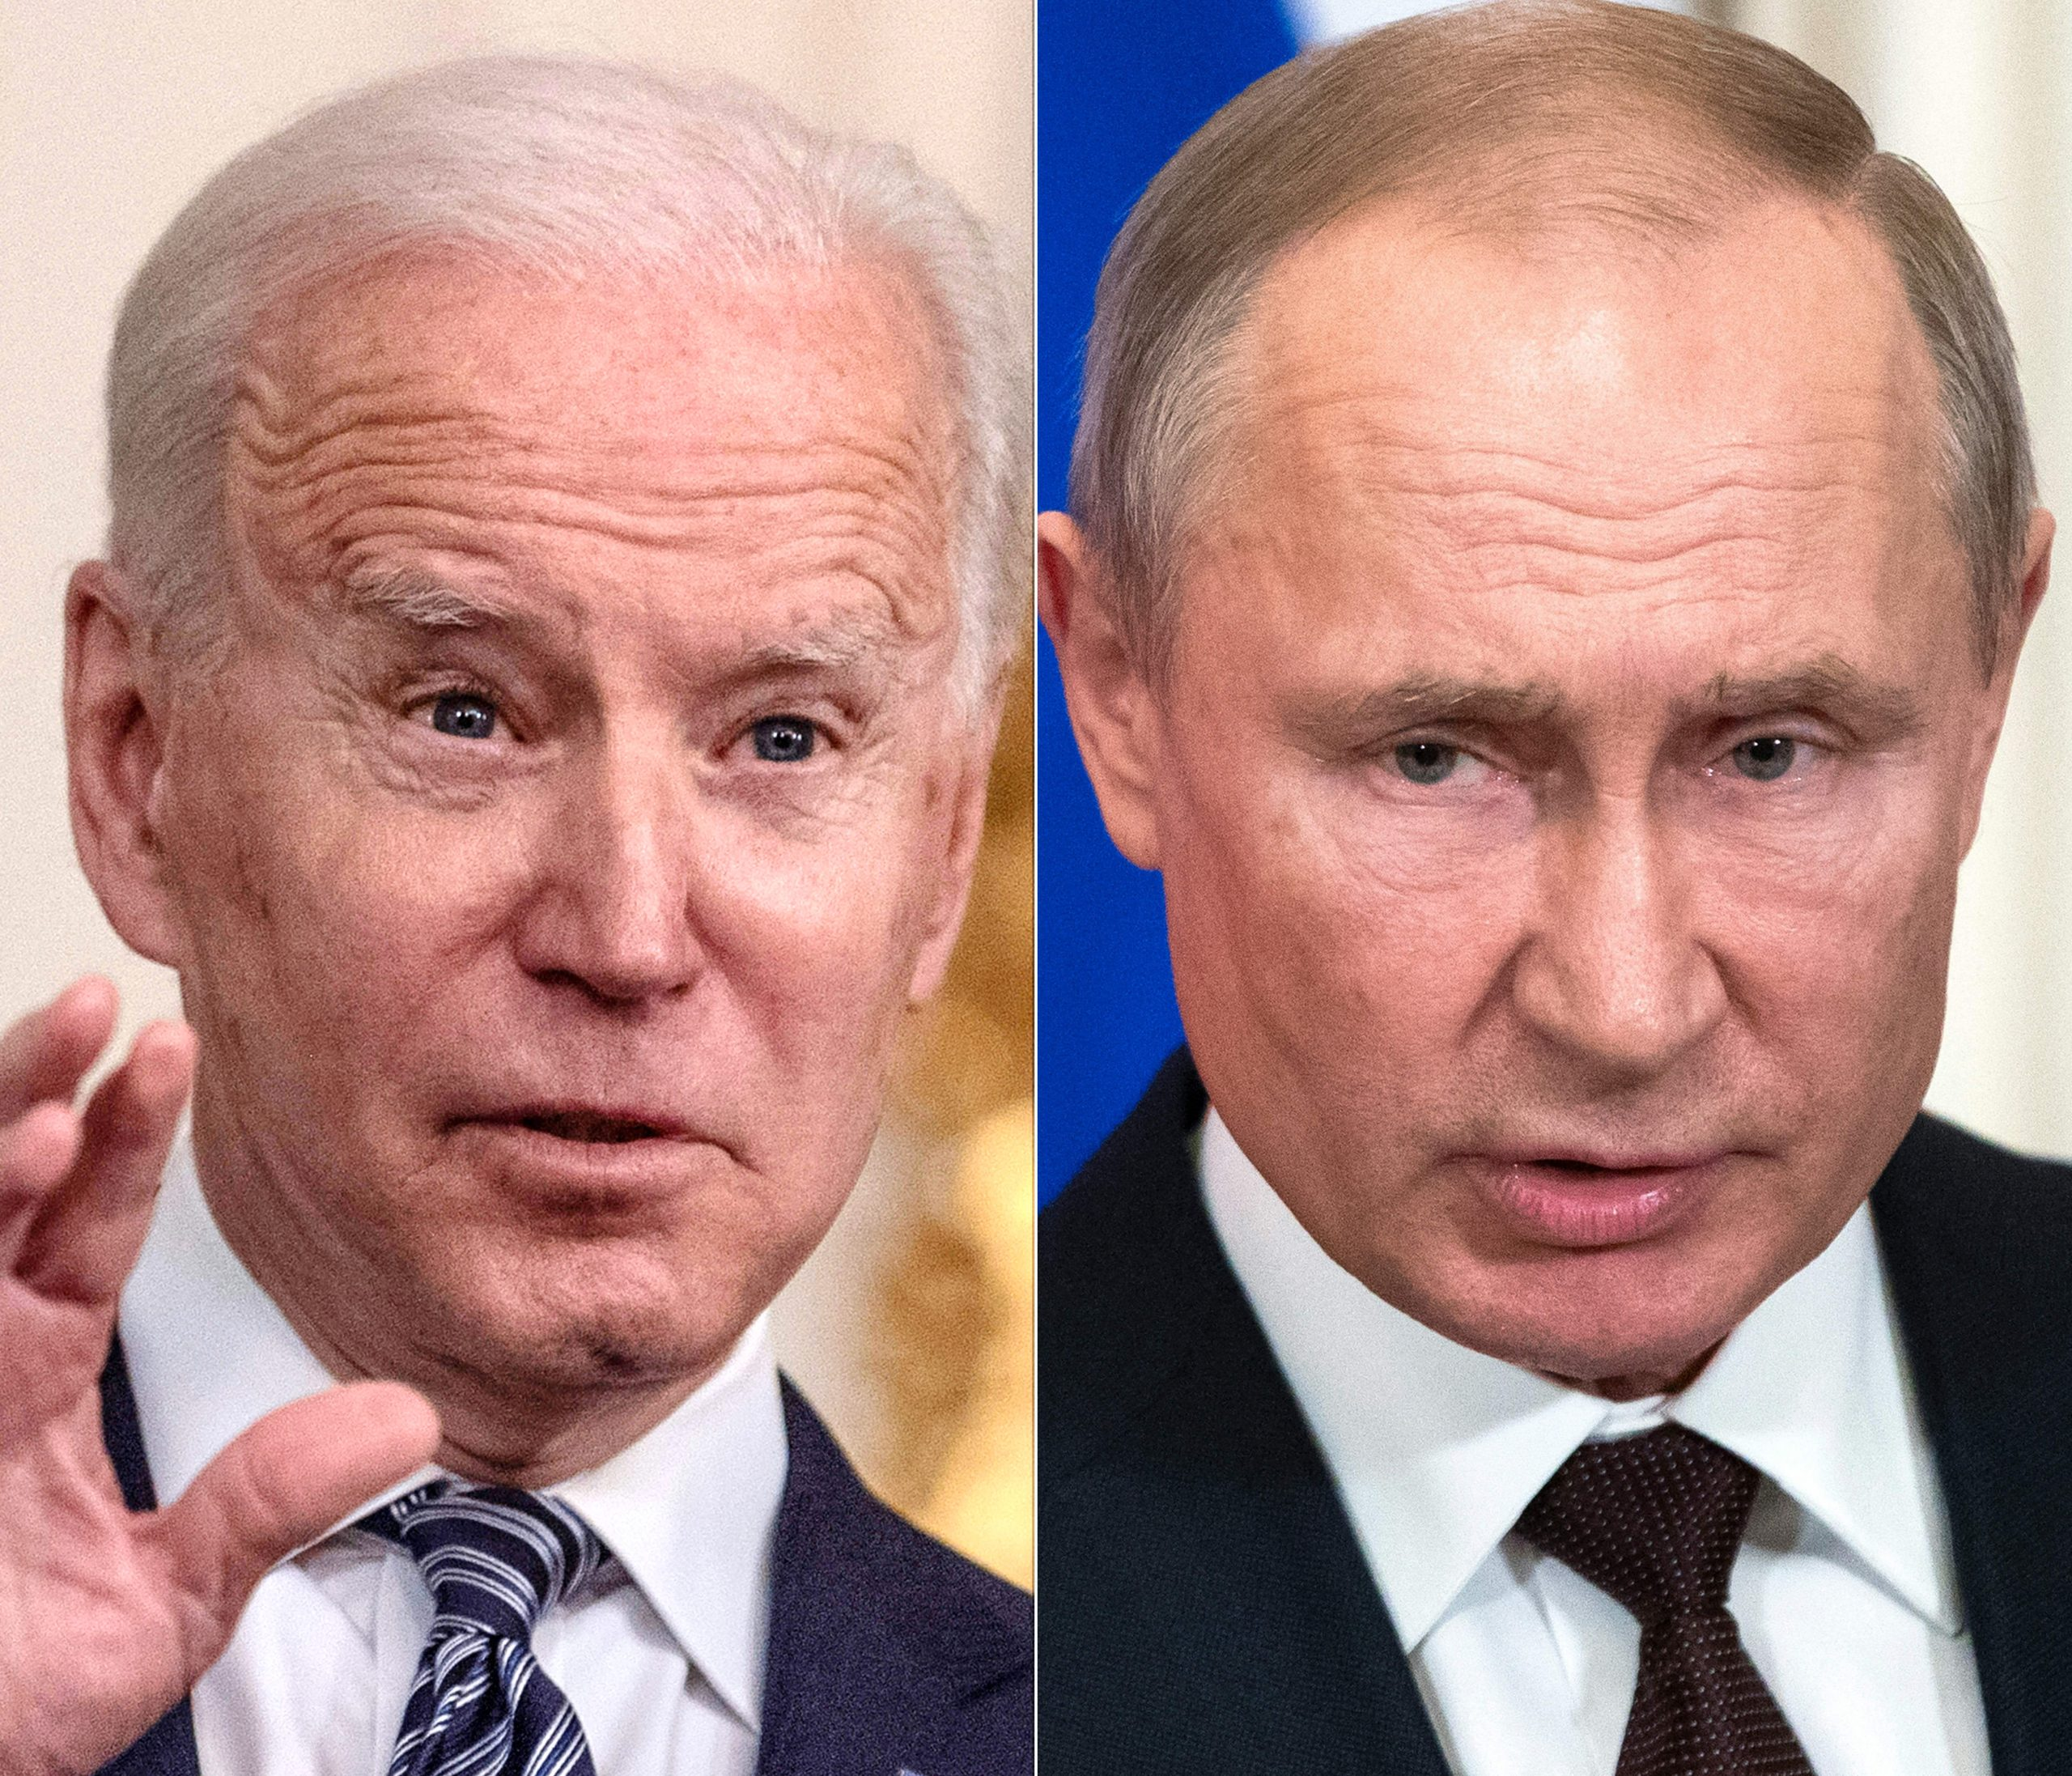 U.S. sanctions 'mostly symbolic' and won't trouble Russia